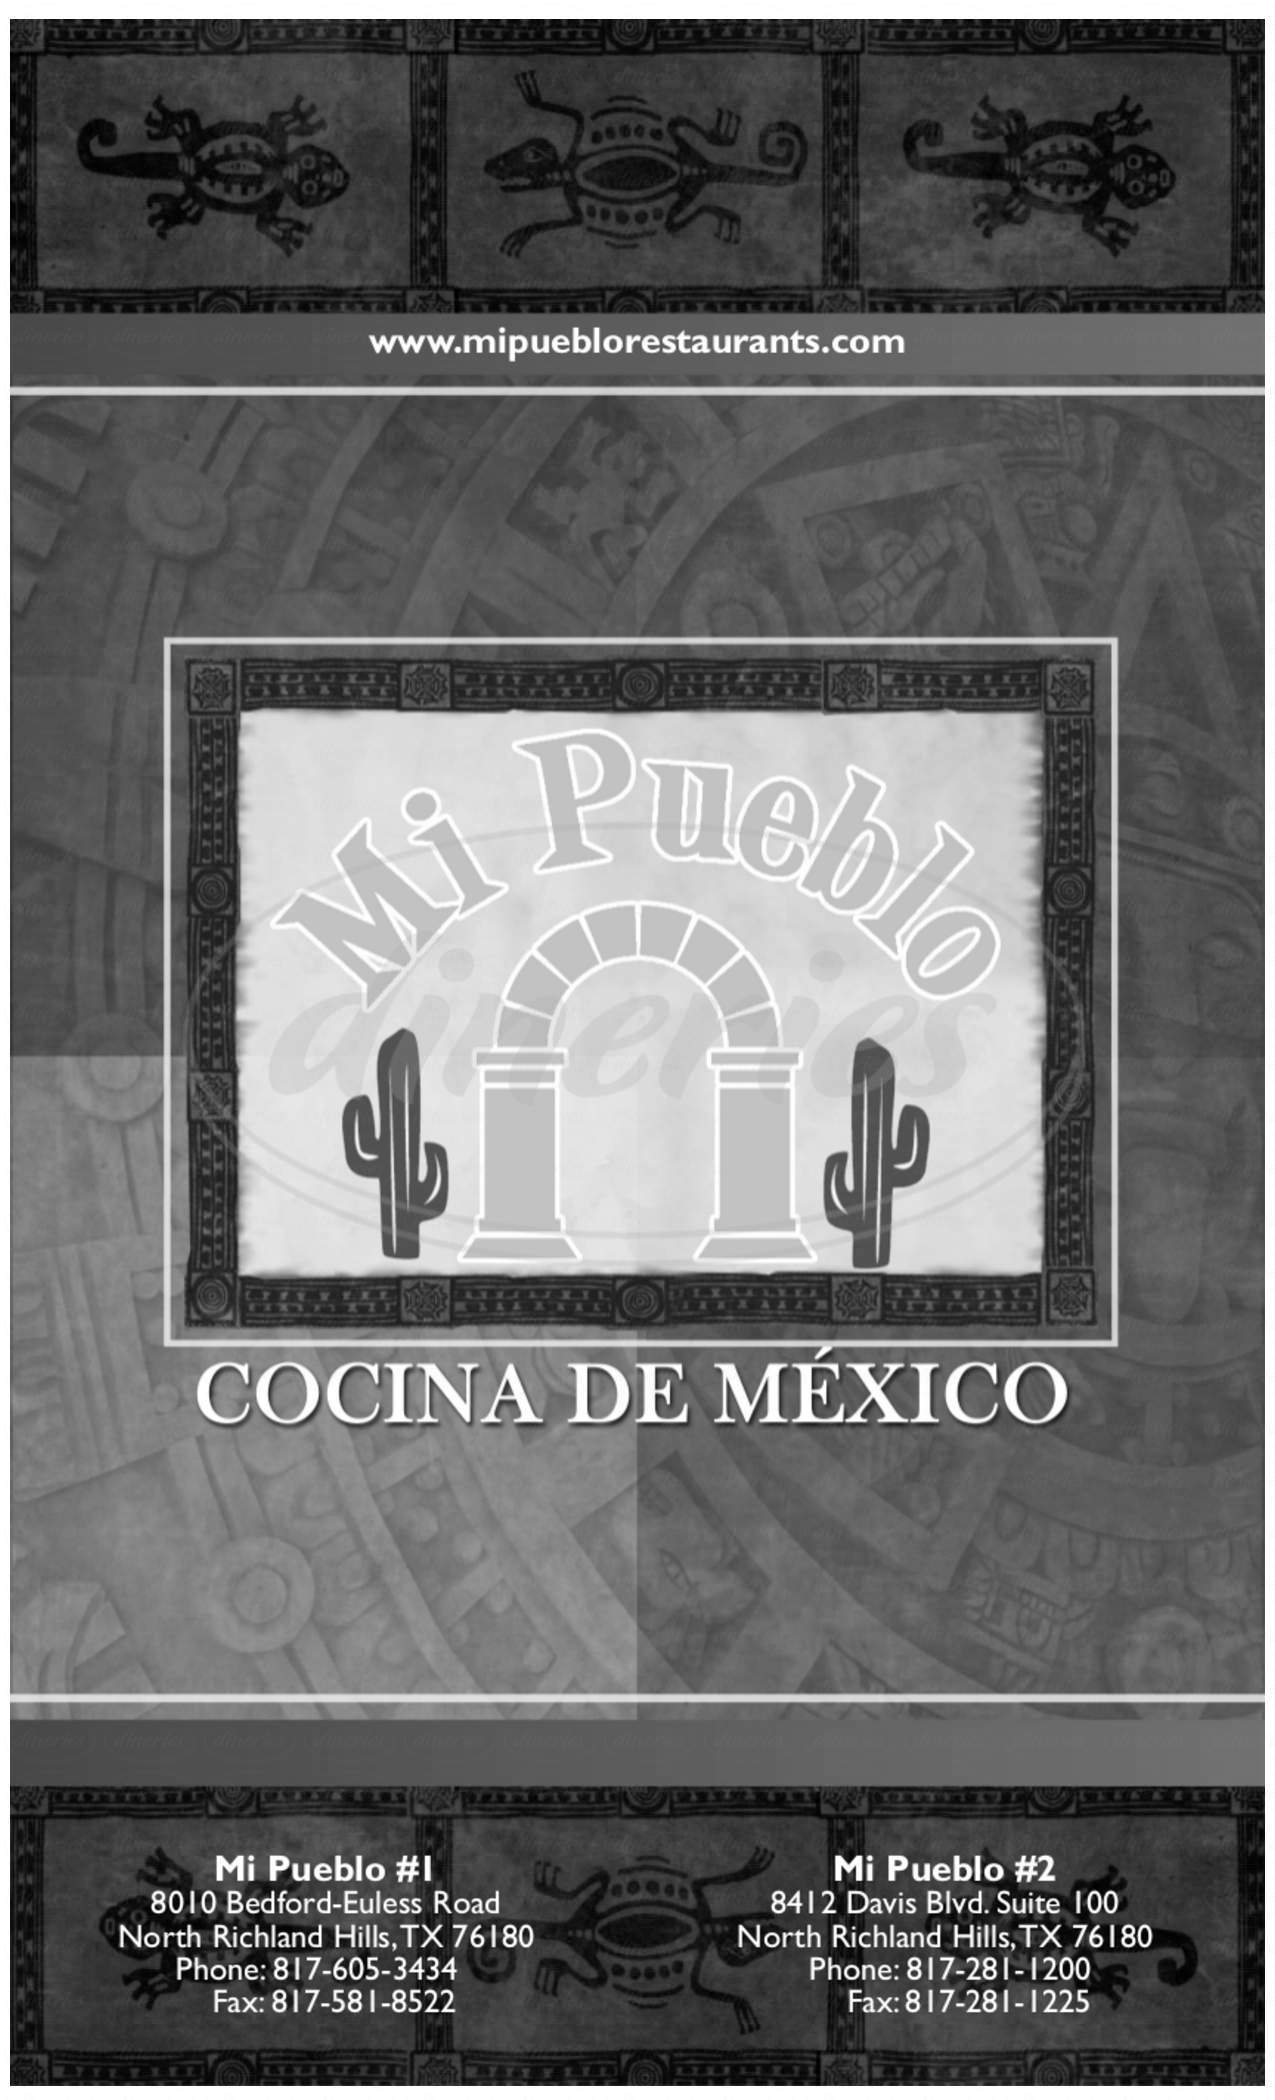 menu for Mi Pueblo No 2